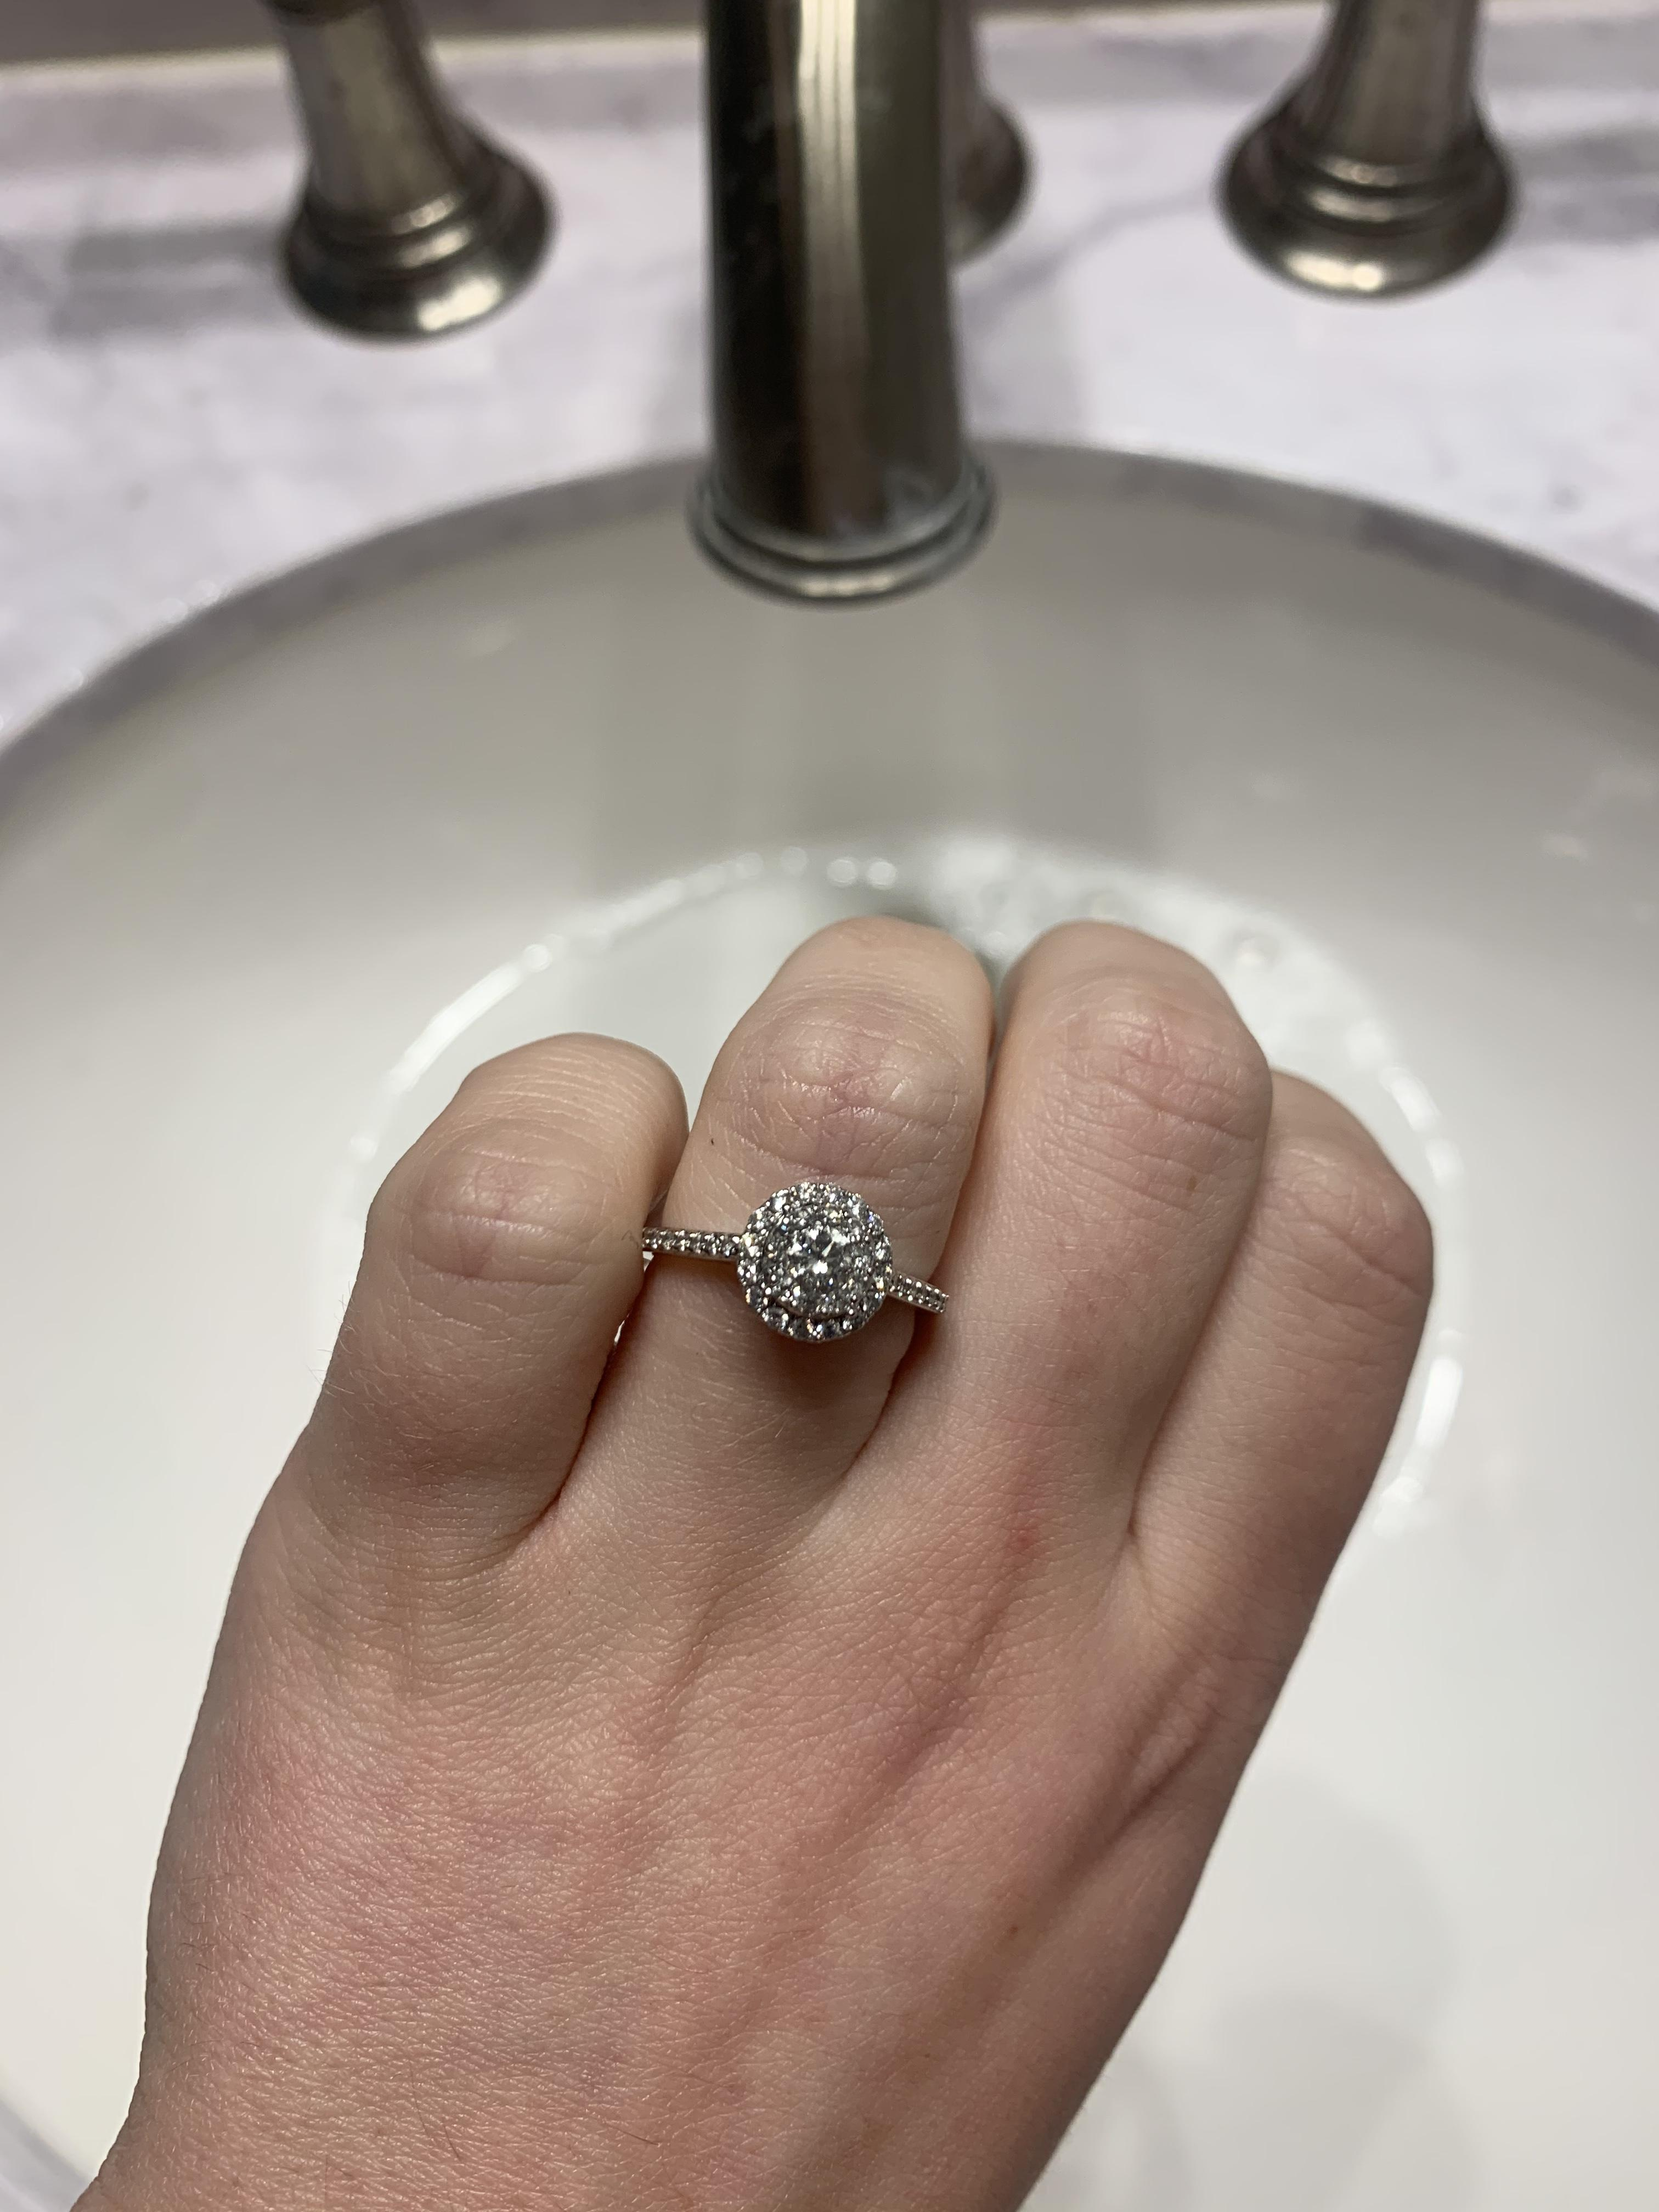 Zales Engagement Ring for